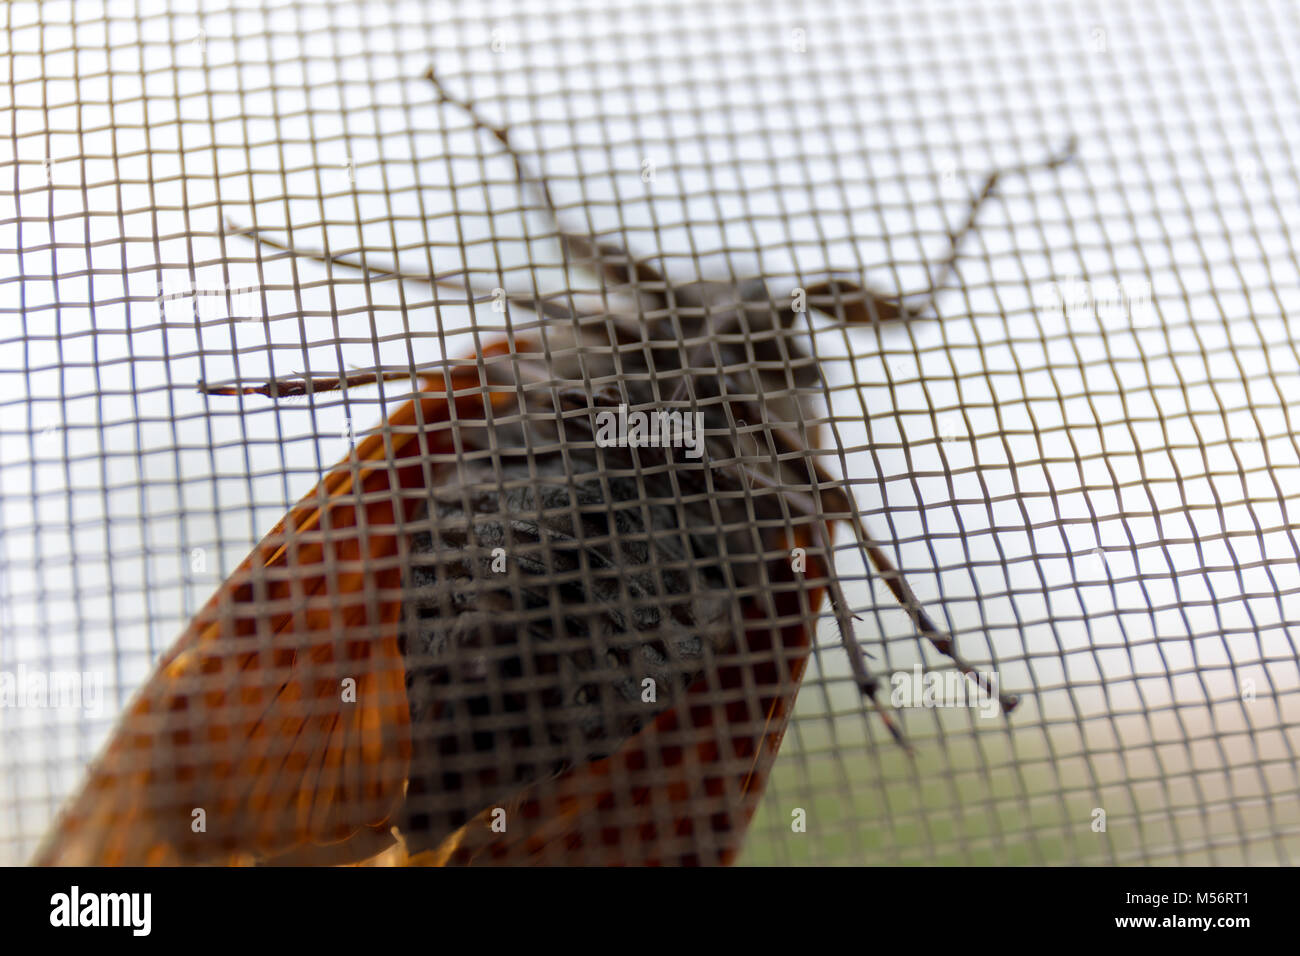 Cicada on a wire screen; Tokyo, Japan - Stock Image